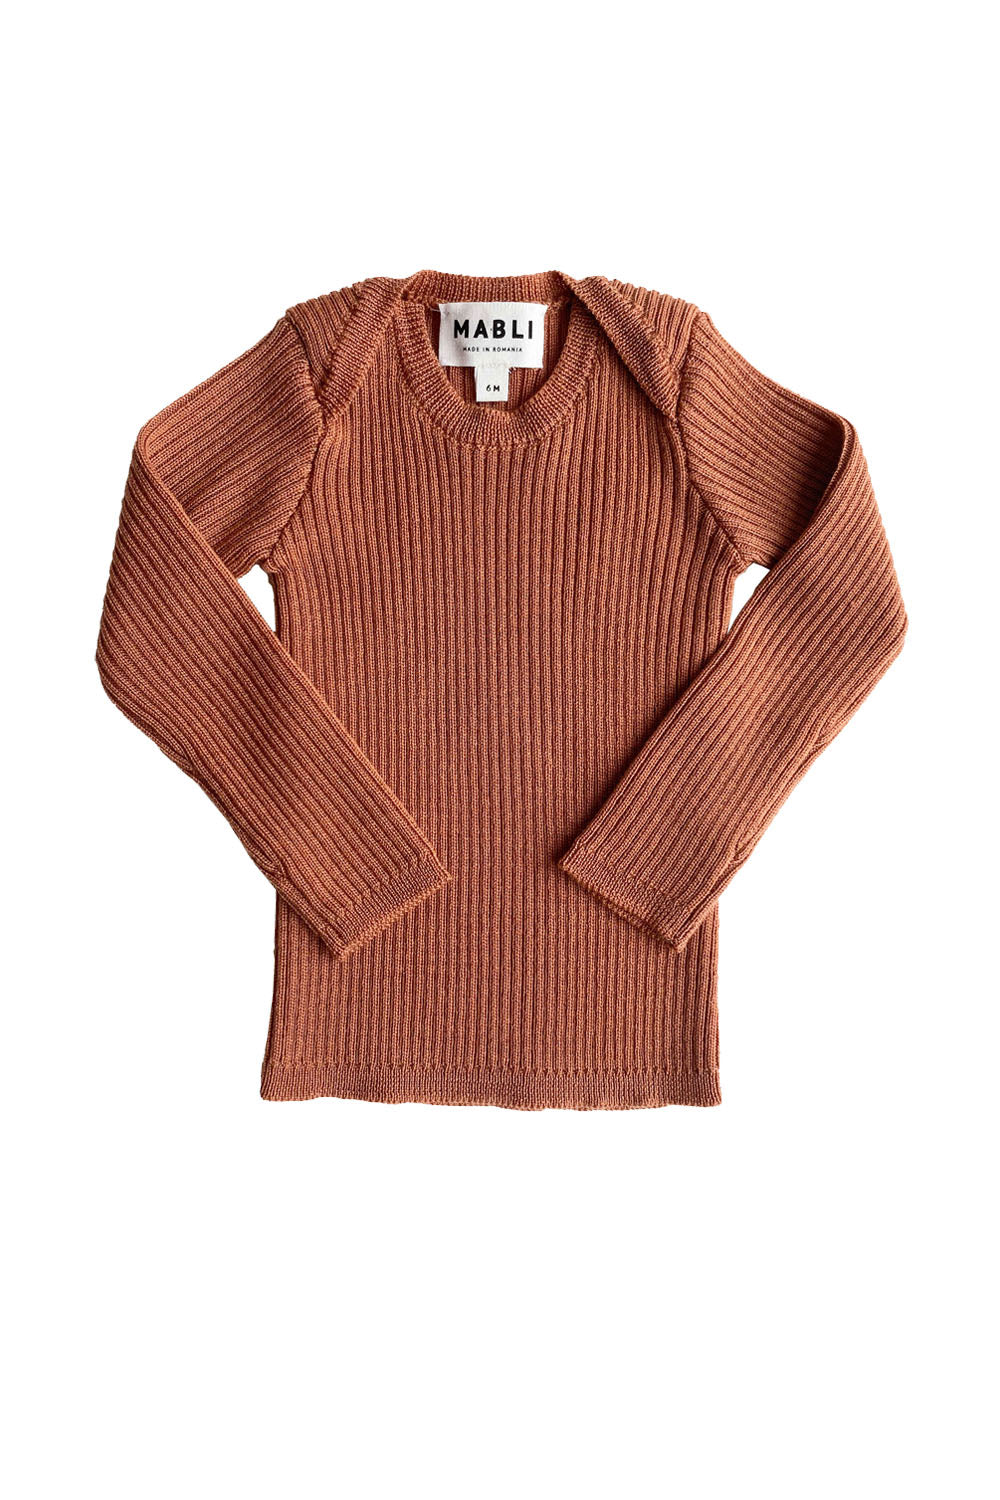 Mabli Rosewood Knitted Top